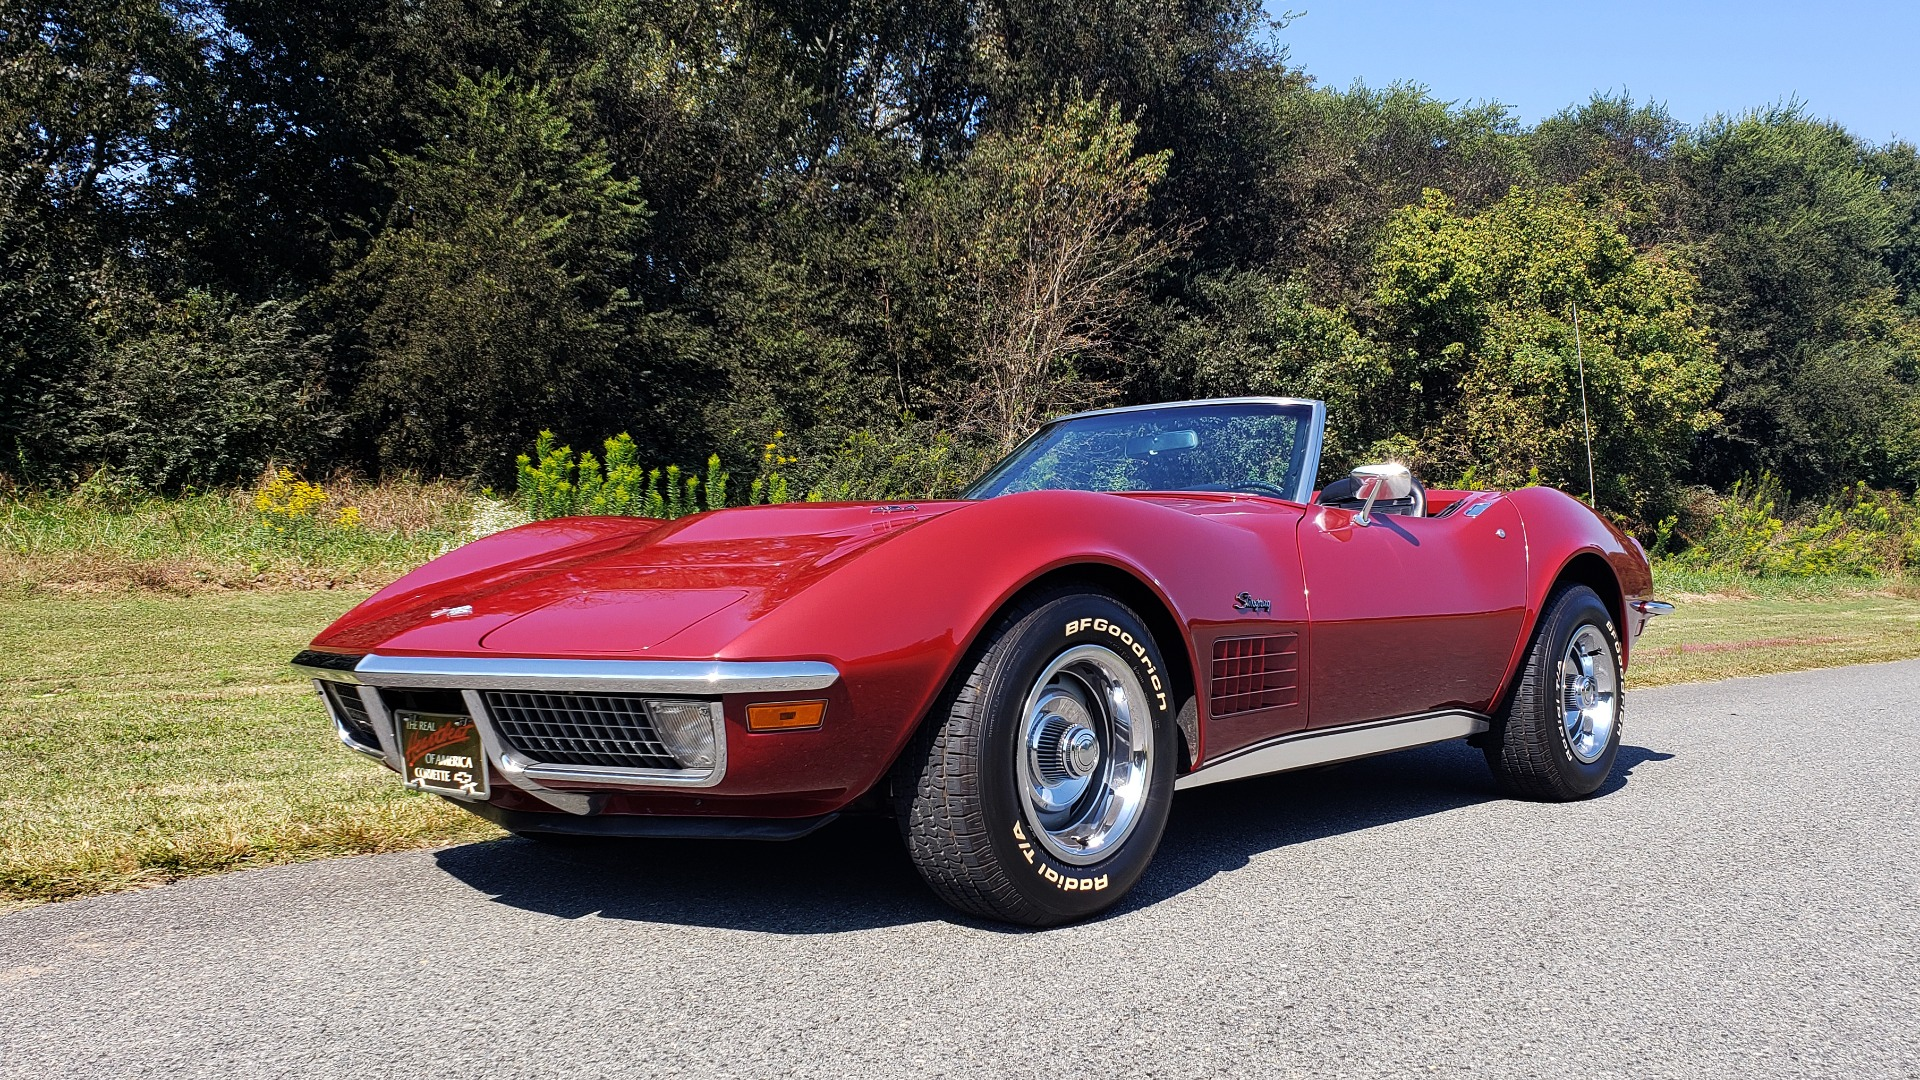 Used 1970 Chevrolet CORVETTE CONVERTIBLE / 454CI V8 / AUTO / NEW BLACK TOP / NUMBERS MATCH for sale $50,499 at Formula Imports in Charlotte NC 28227 1